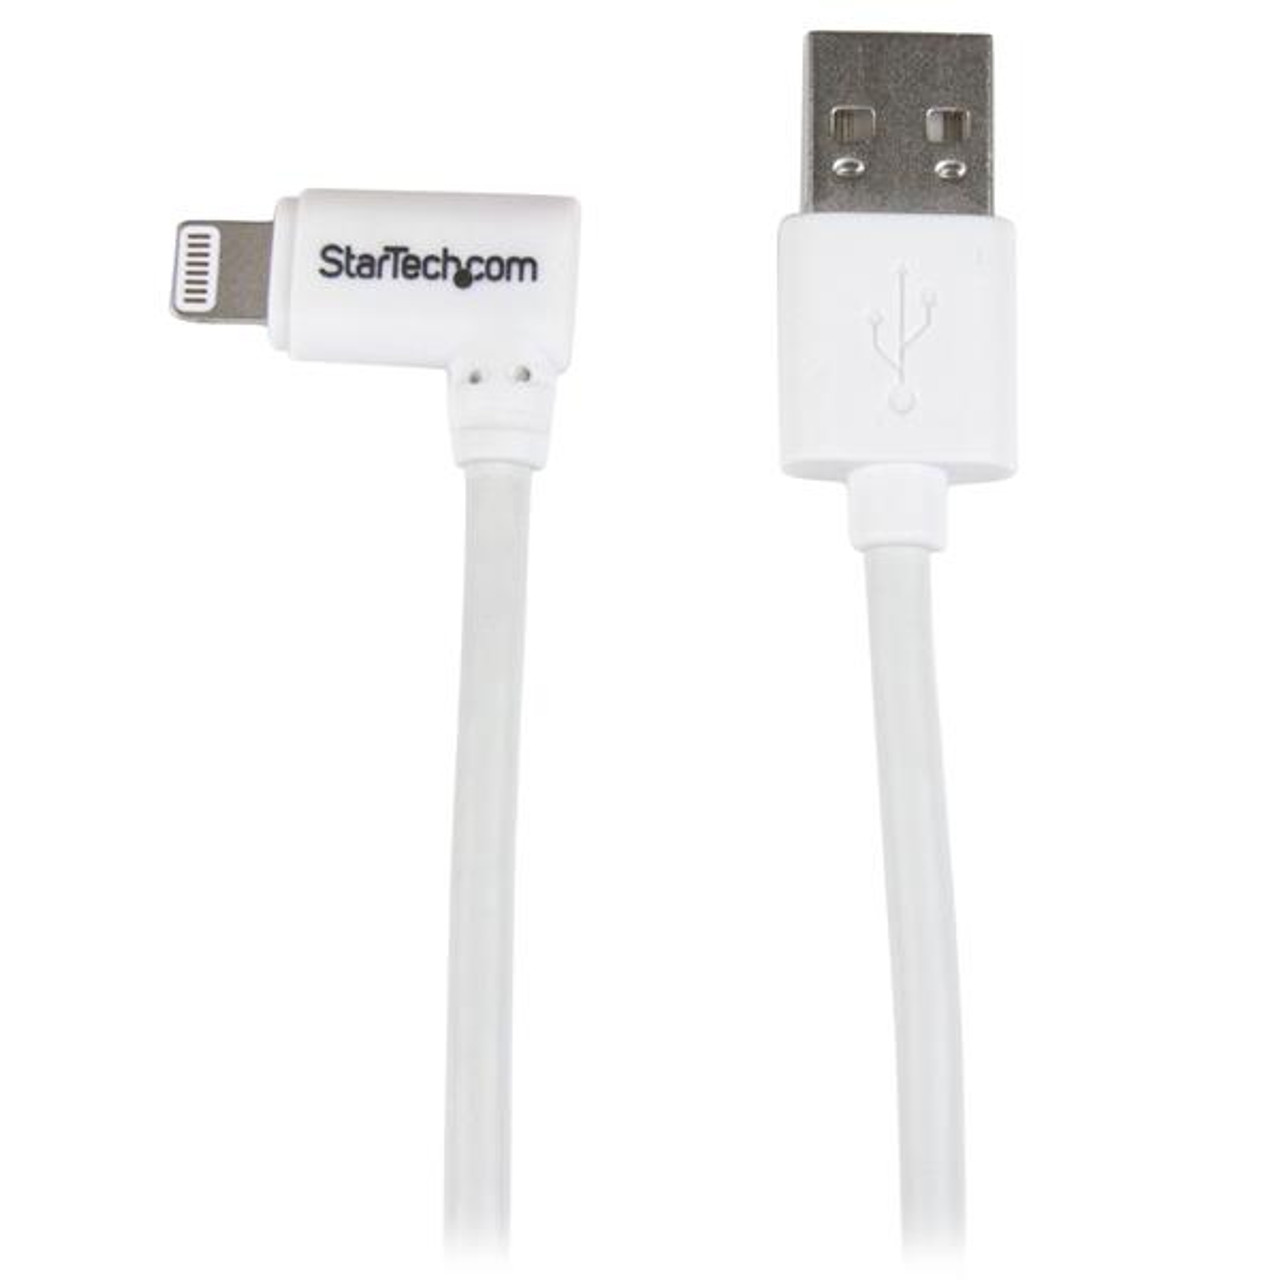 Image for StarTech Angled Lightning to USB Cable - 1 m (3 ft.), White CX Computer Superstore